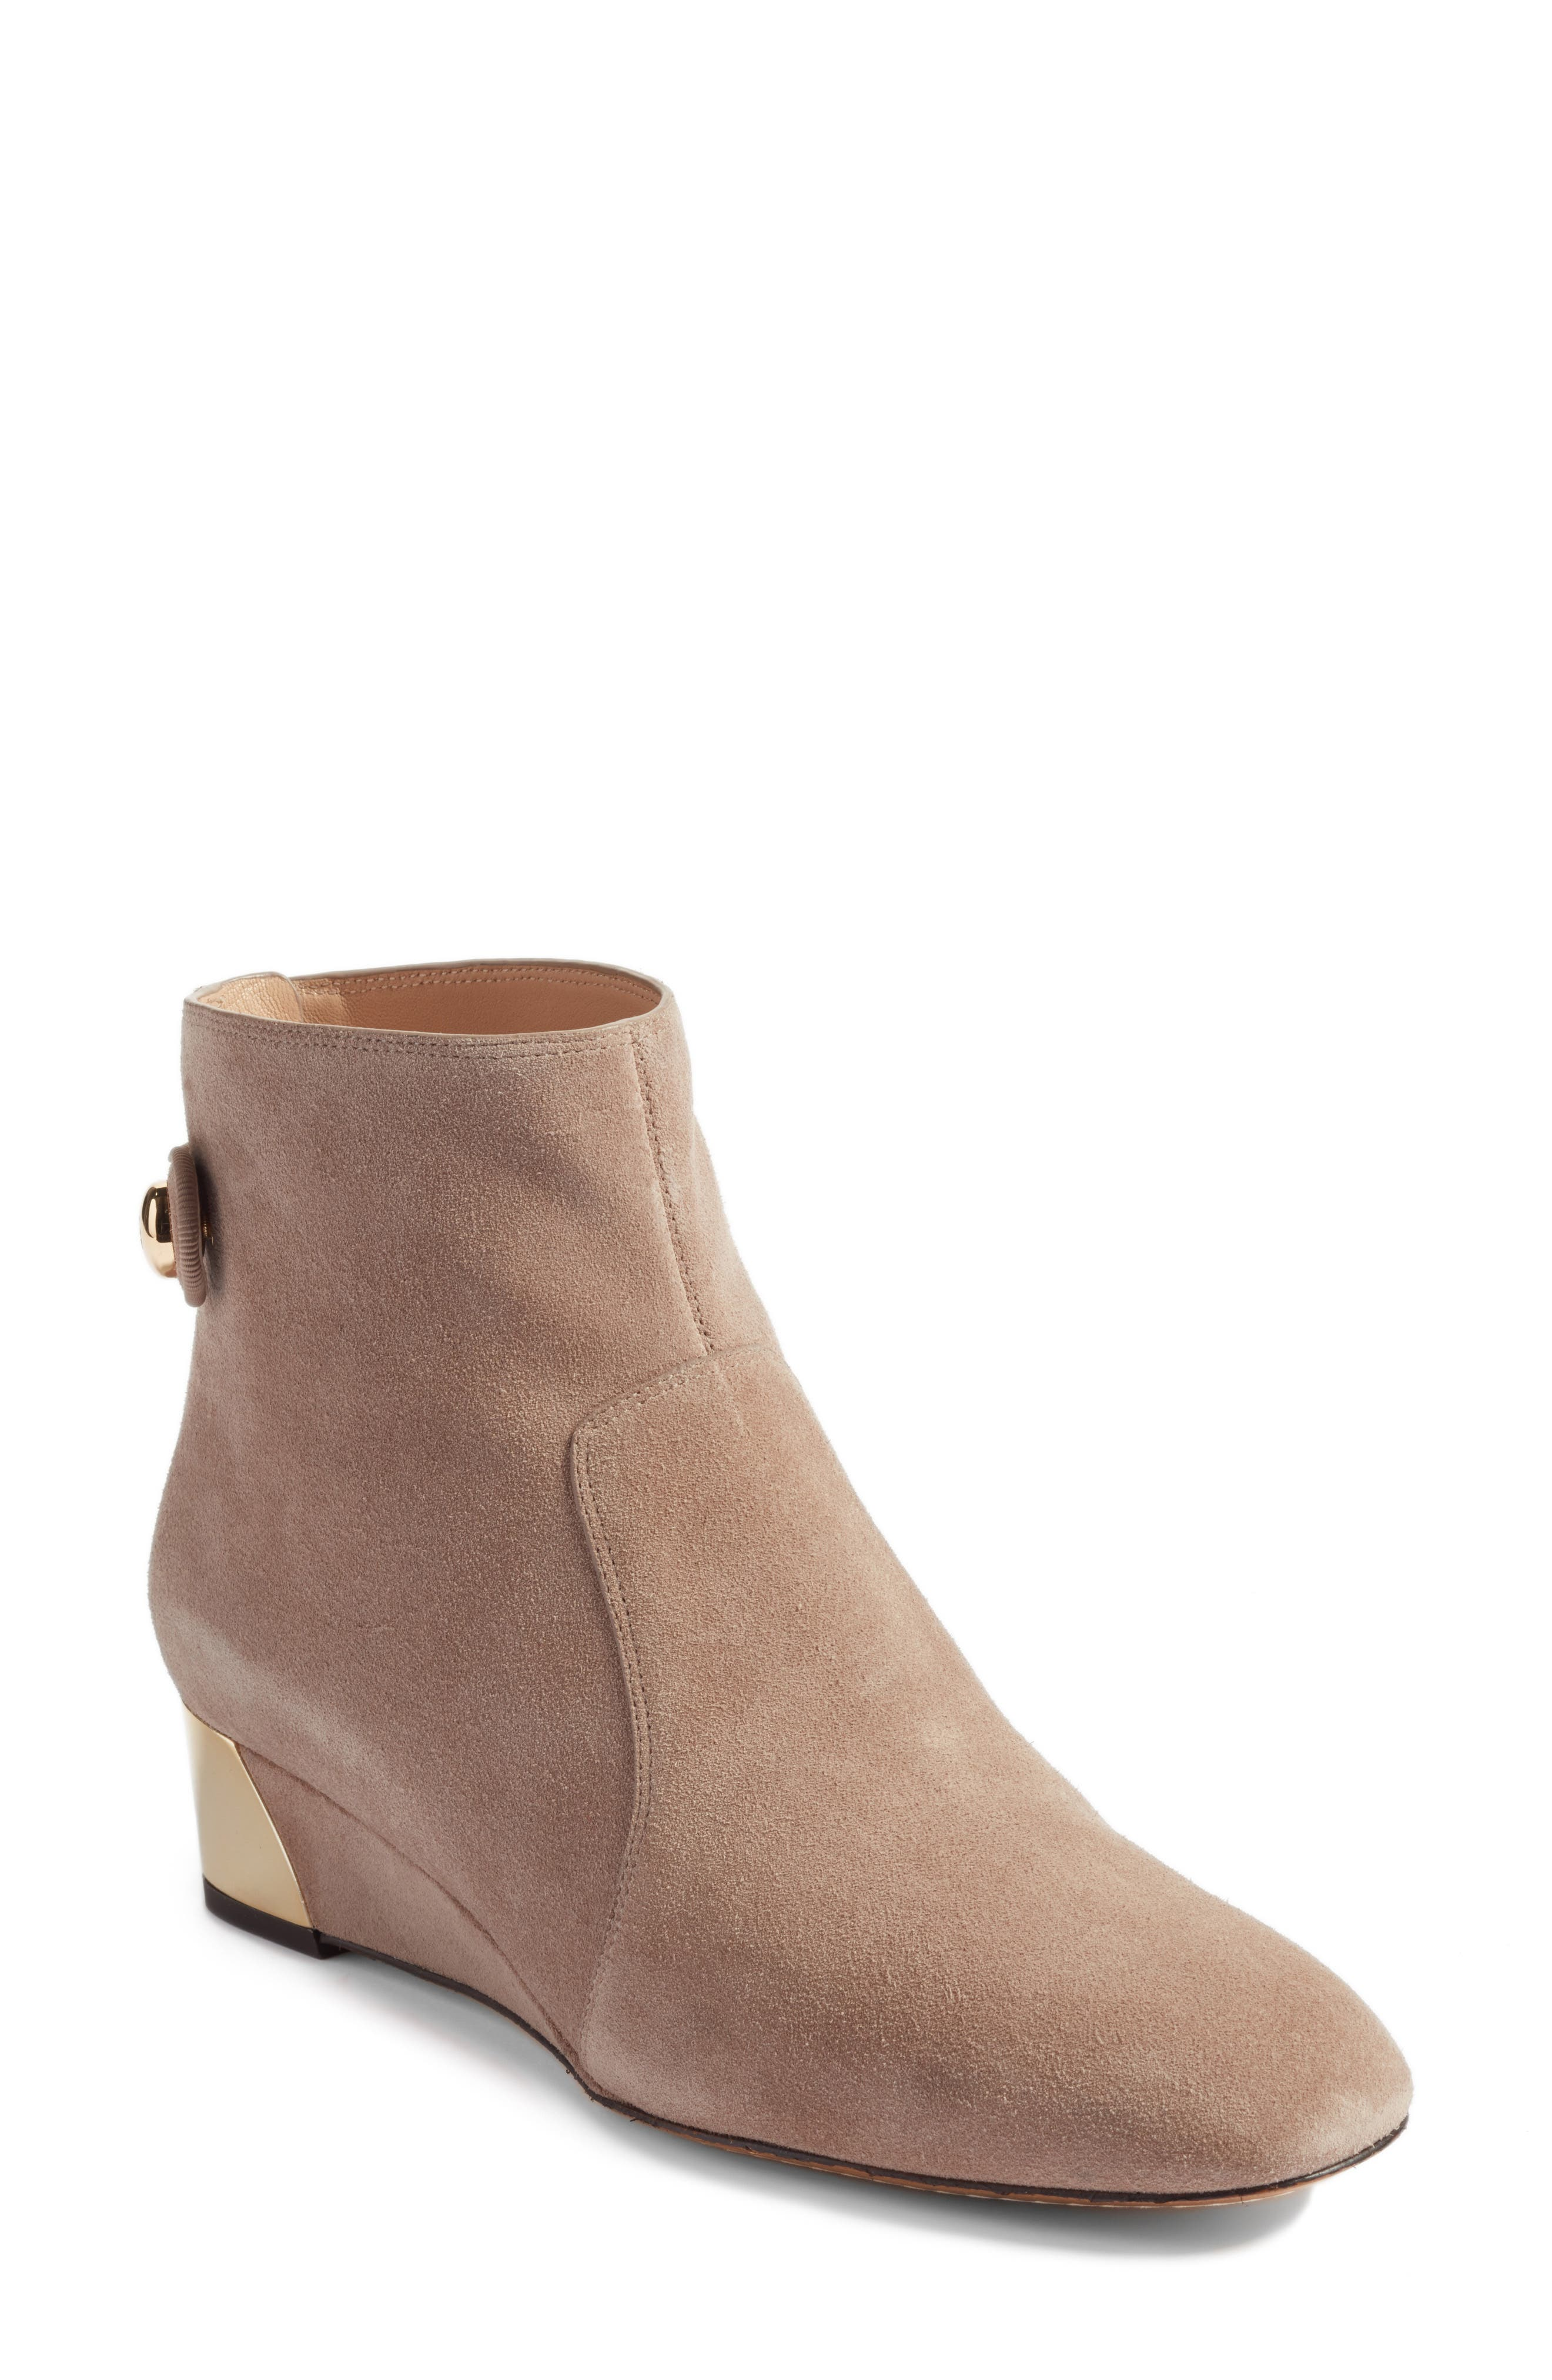 Tory Burch Marisa Wedge Bootie (Women)